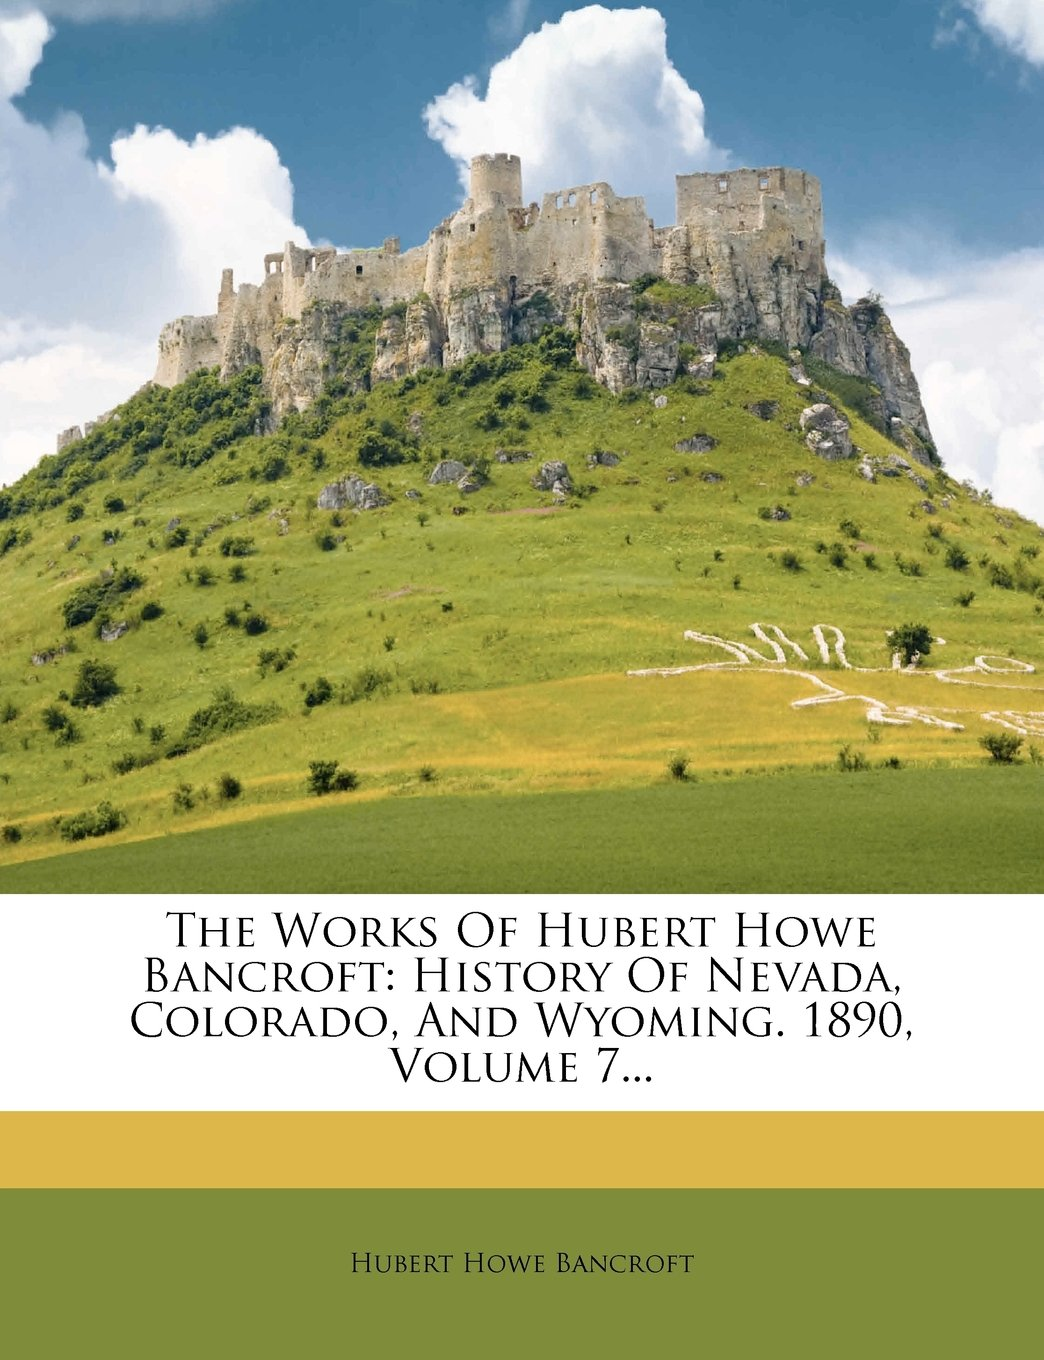 The Works Of Hubert Howe Bancroft: History Of Nevada, Colorado, And Wyoming. 1890, Volume 7... PDF